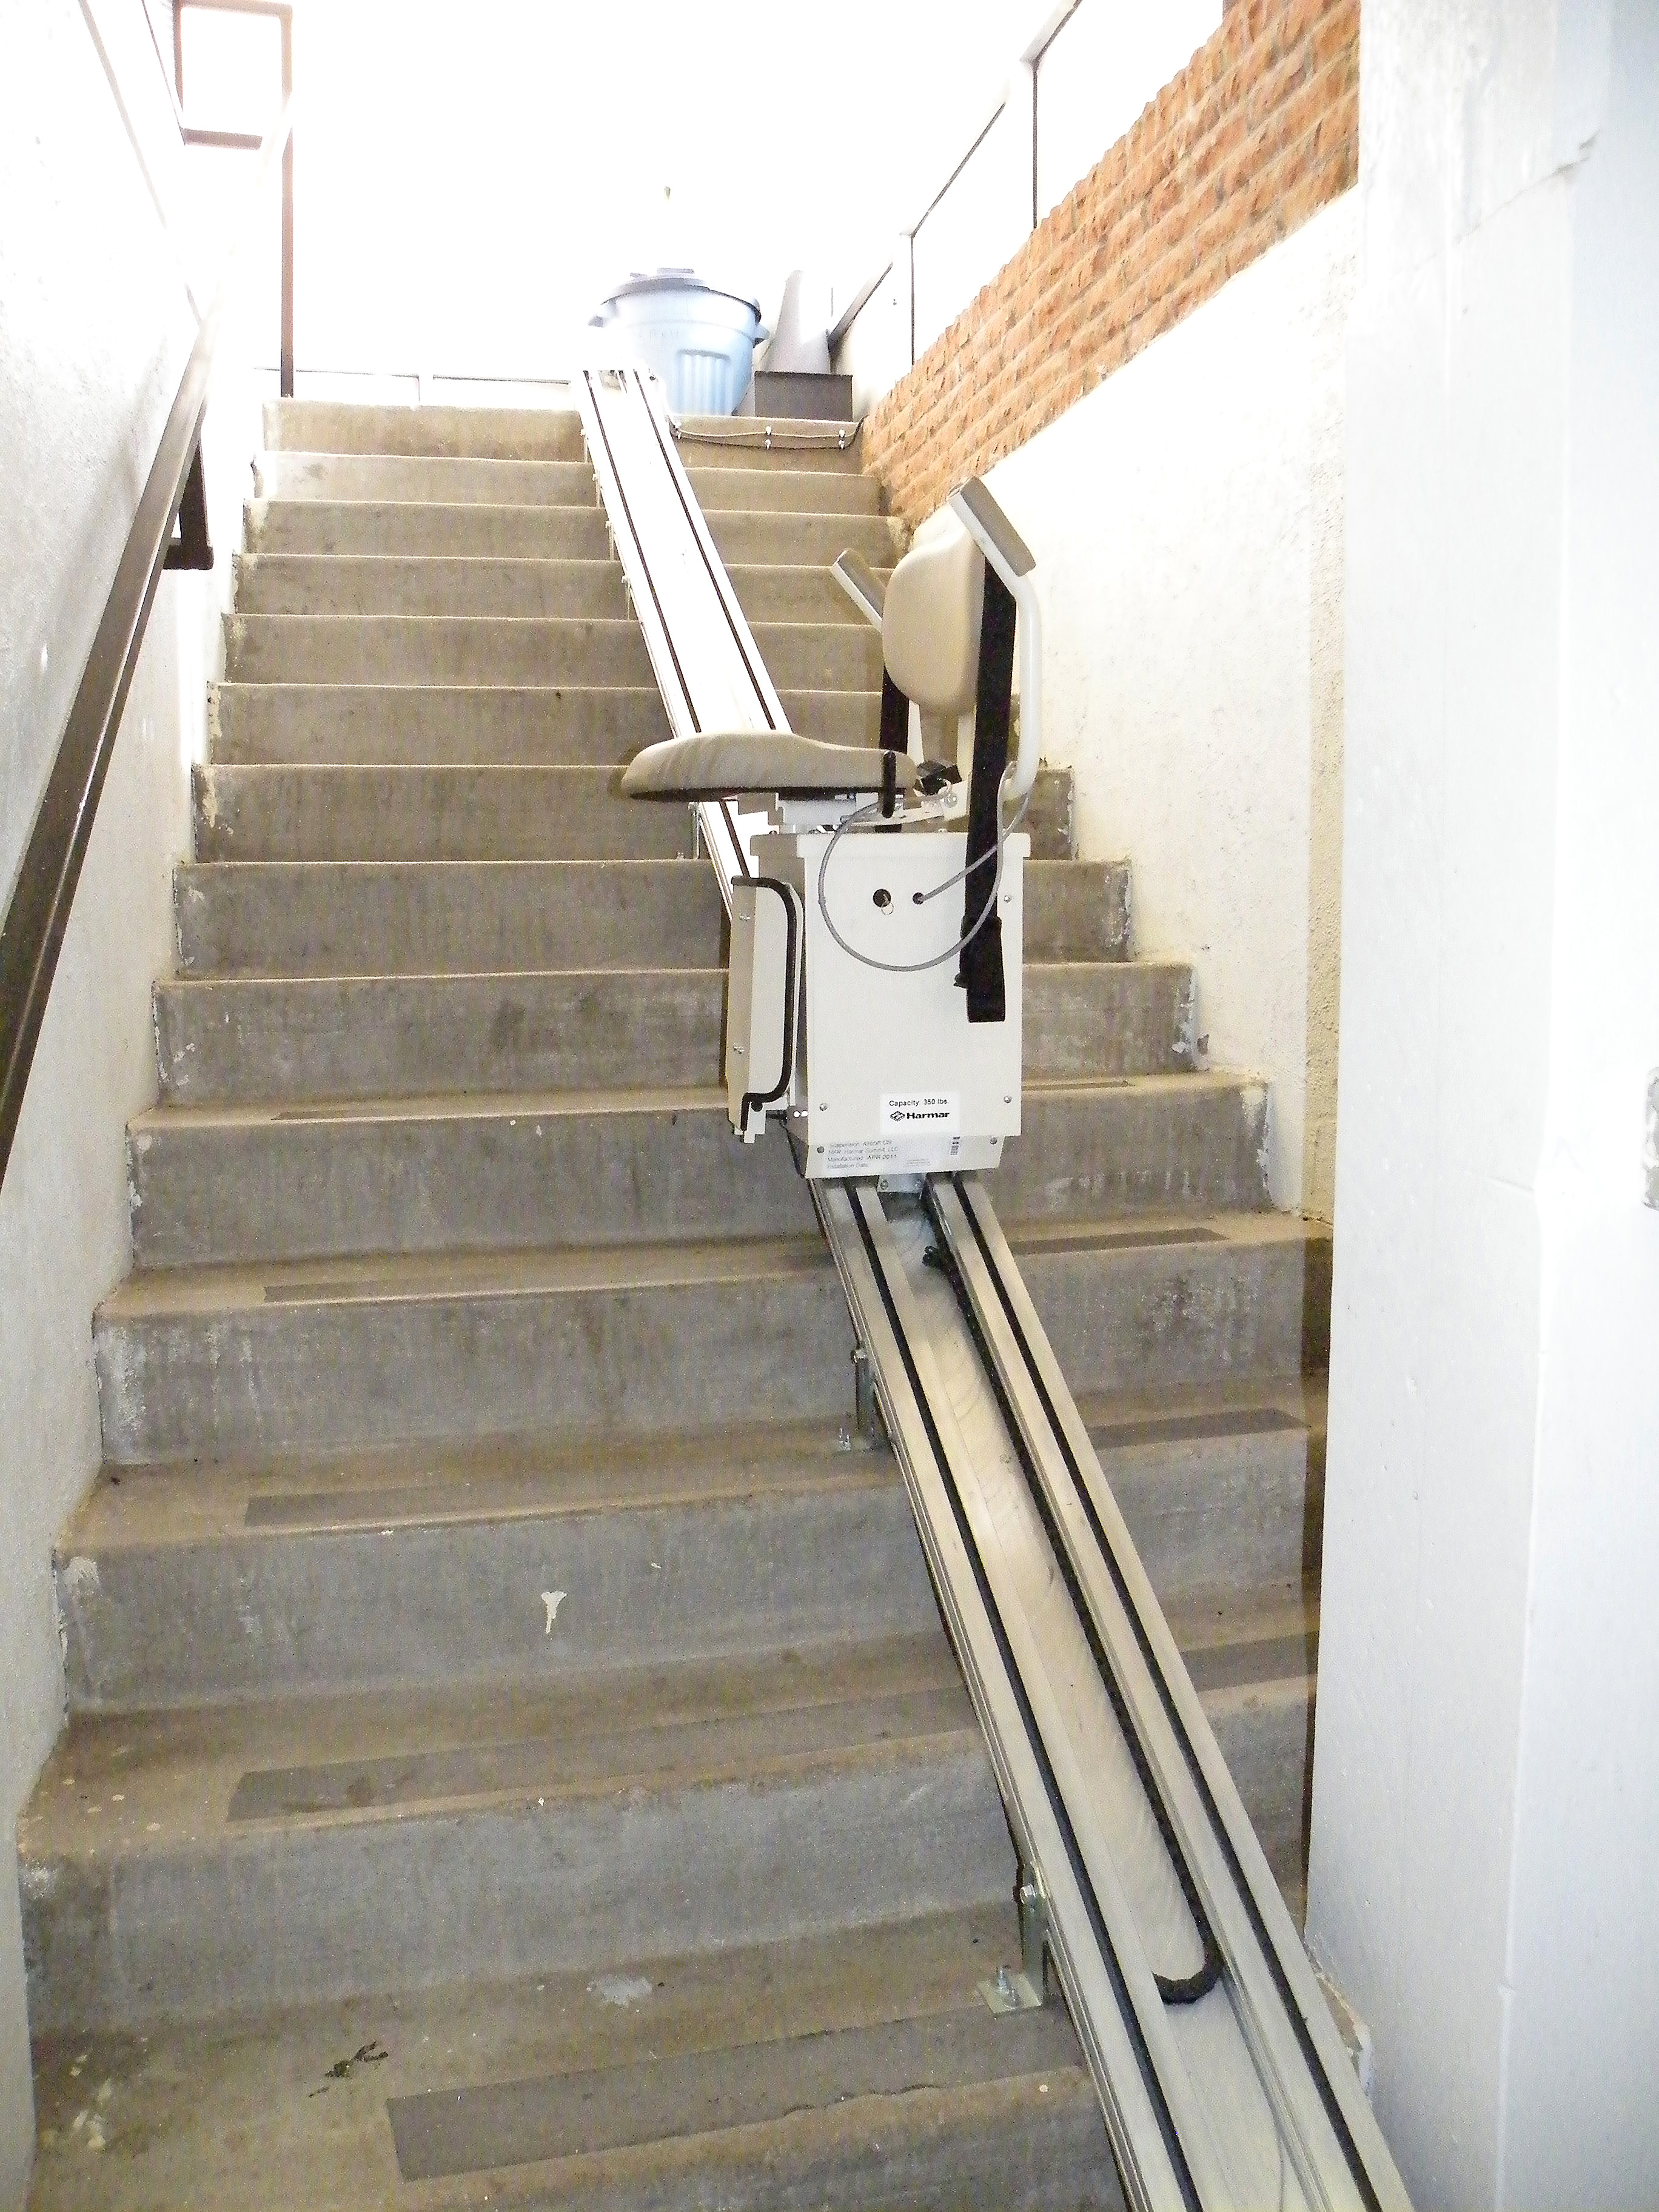 A wheelchair accessible lift to take people up stairs